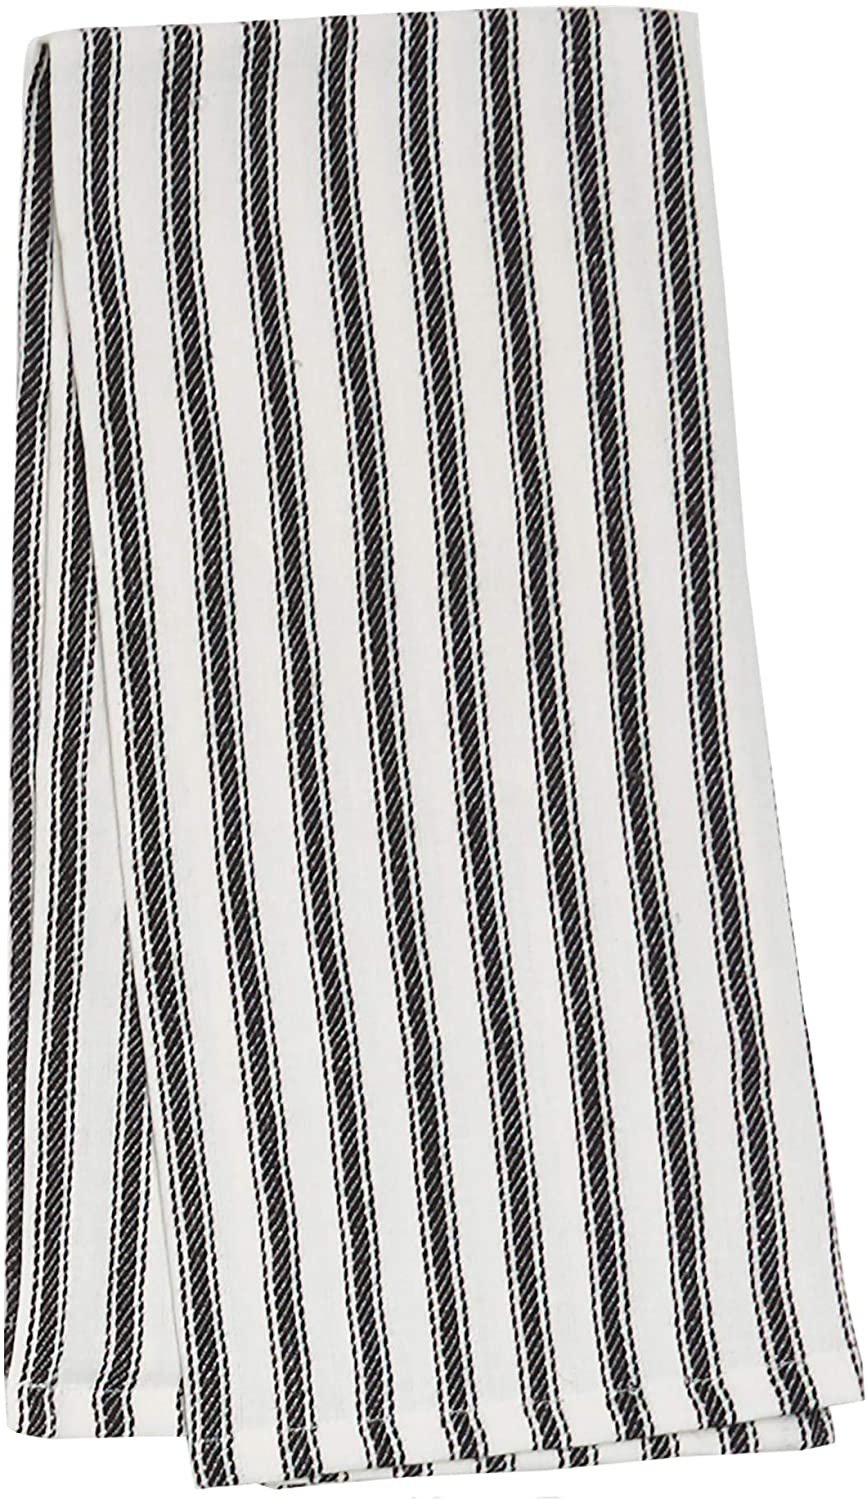 C&F Home Ticking Stripe Black White Everyday Seasonal Home Décor Handcrafted Woven Premium Cotton Kitchen Towel Kitchen Towel Black